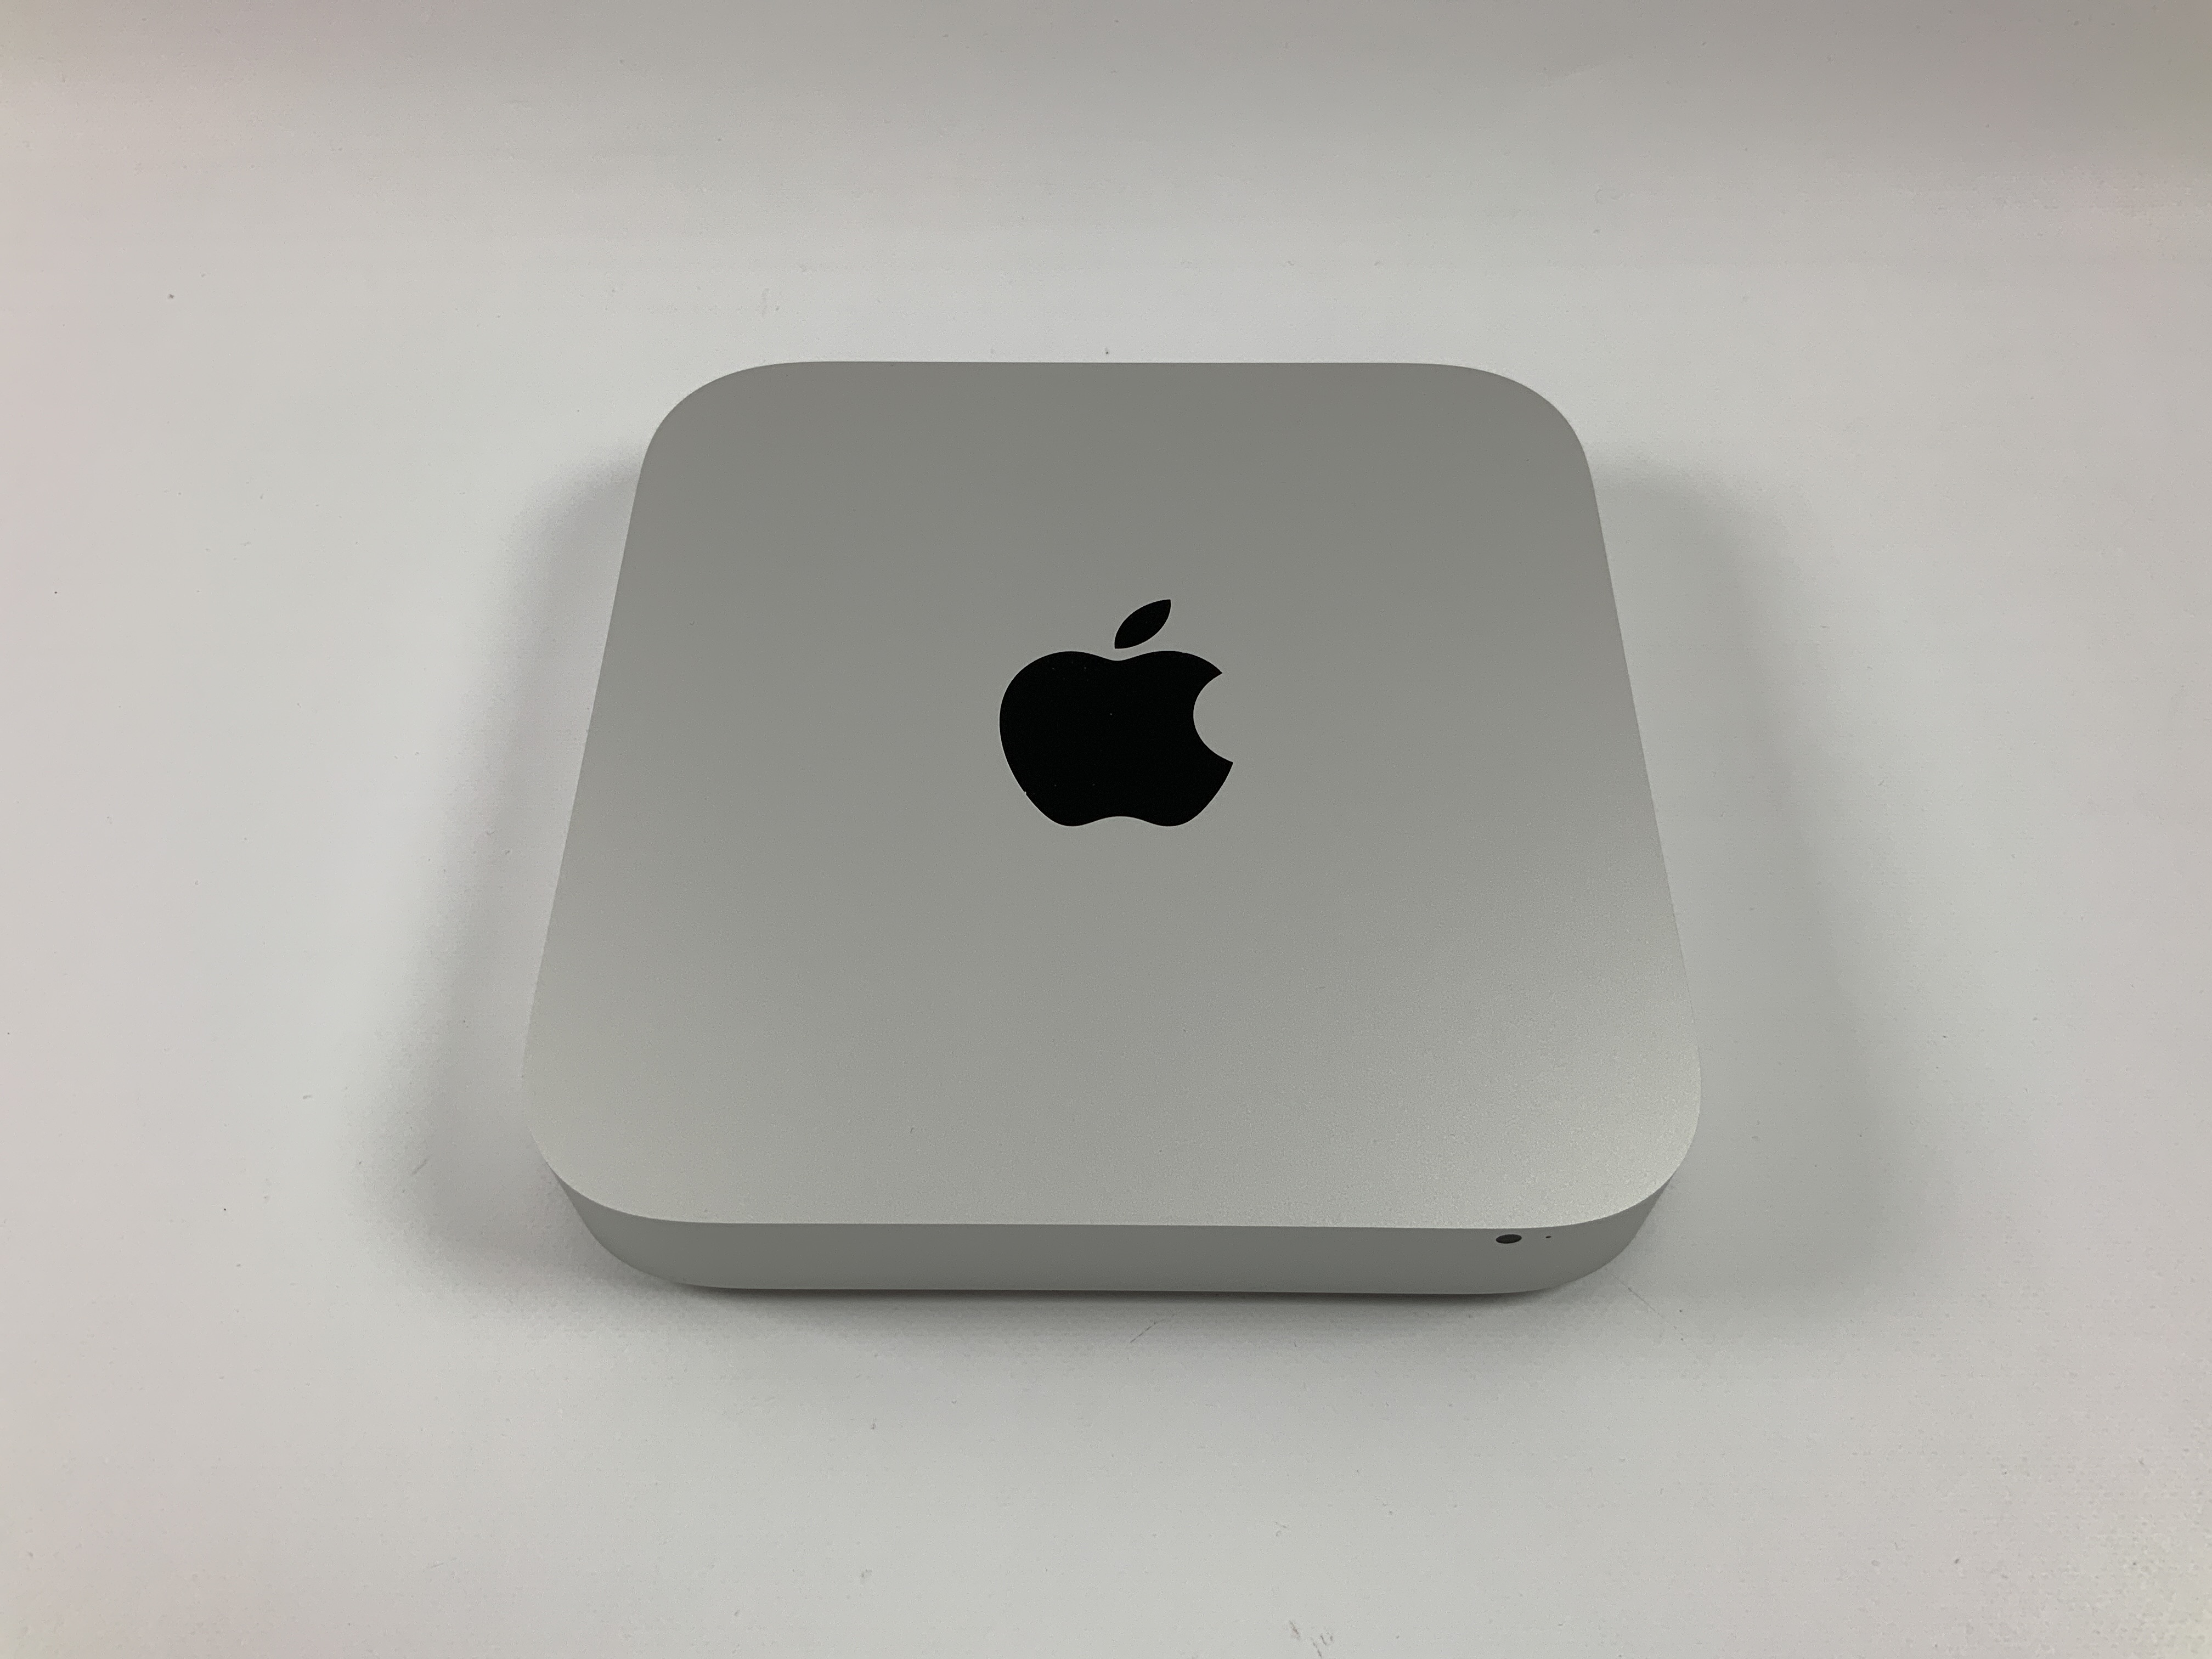 Mac Mini Late 2014 (Intel Core i5 2.6 GHz 8 GB RAM 1 TB HDD), Intel Core i5 2.6 GHz, 8 GB RAM, 1 TB HDD, obraz 1